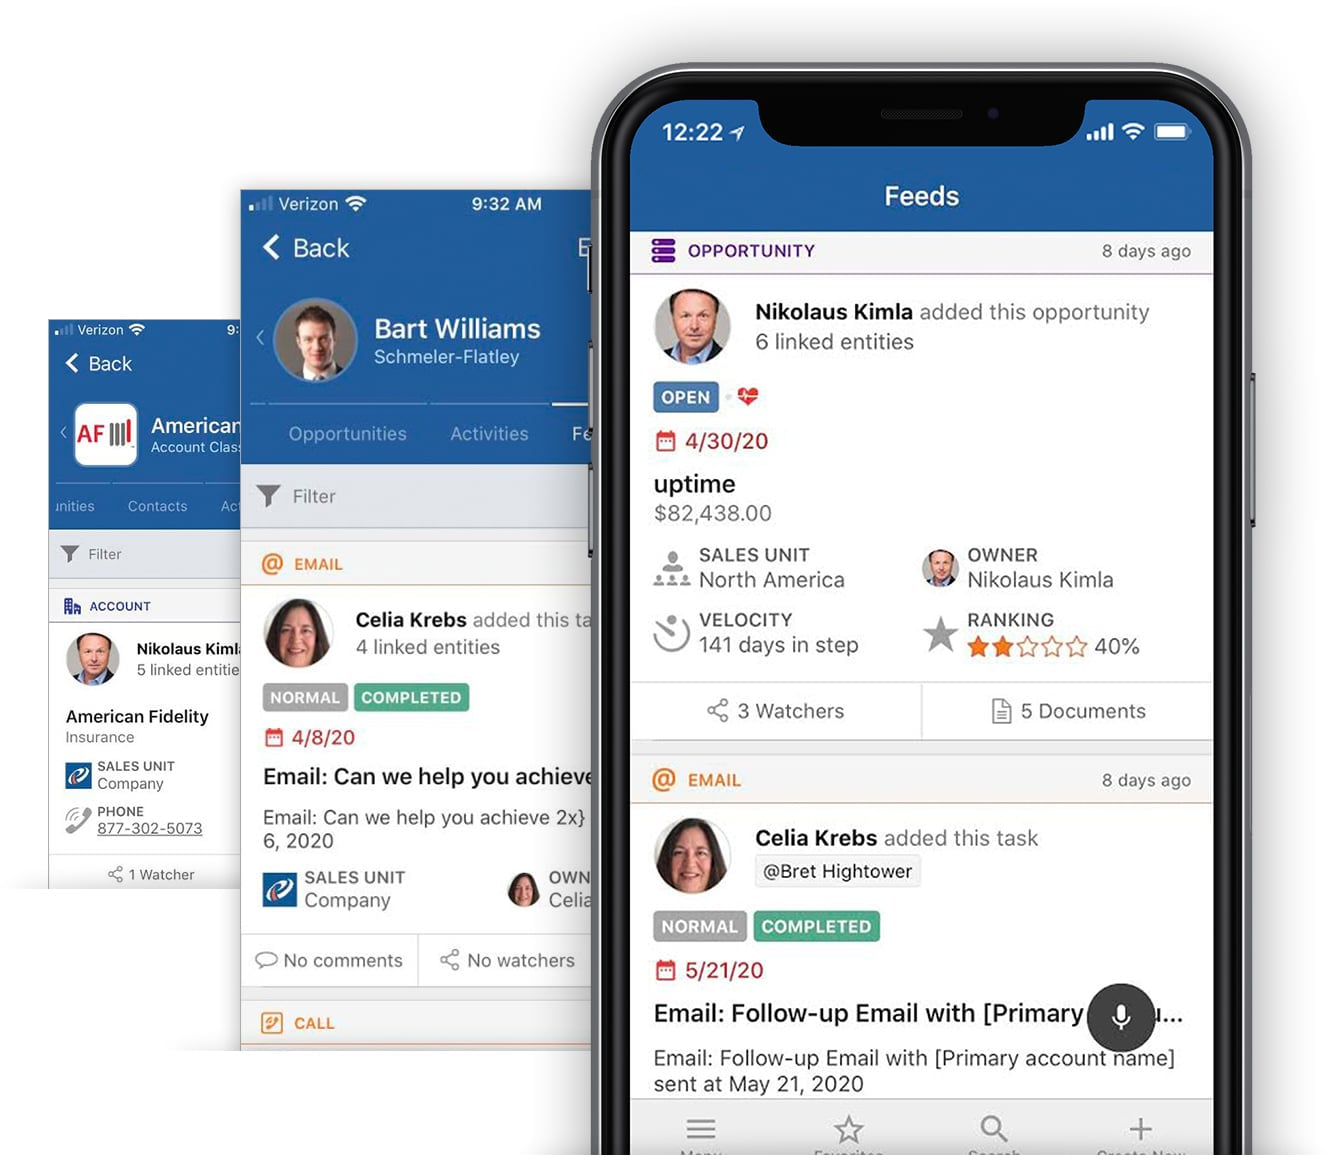 Mobile CRM App feed